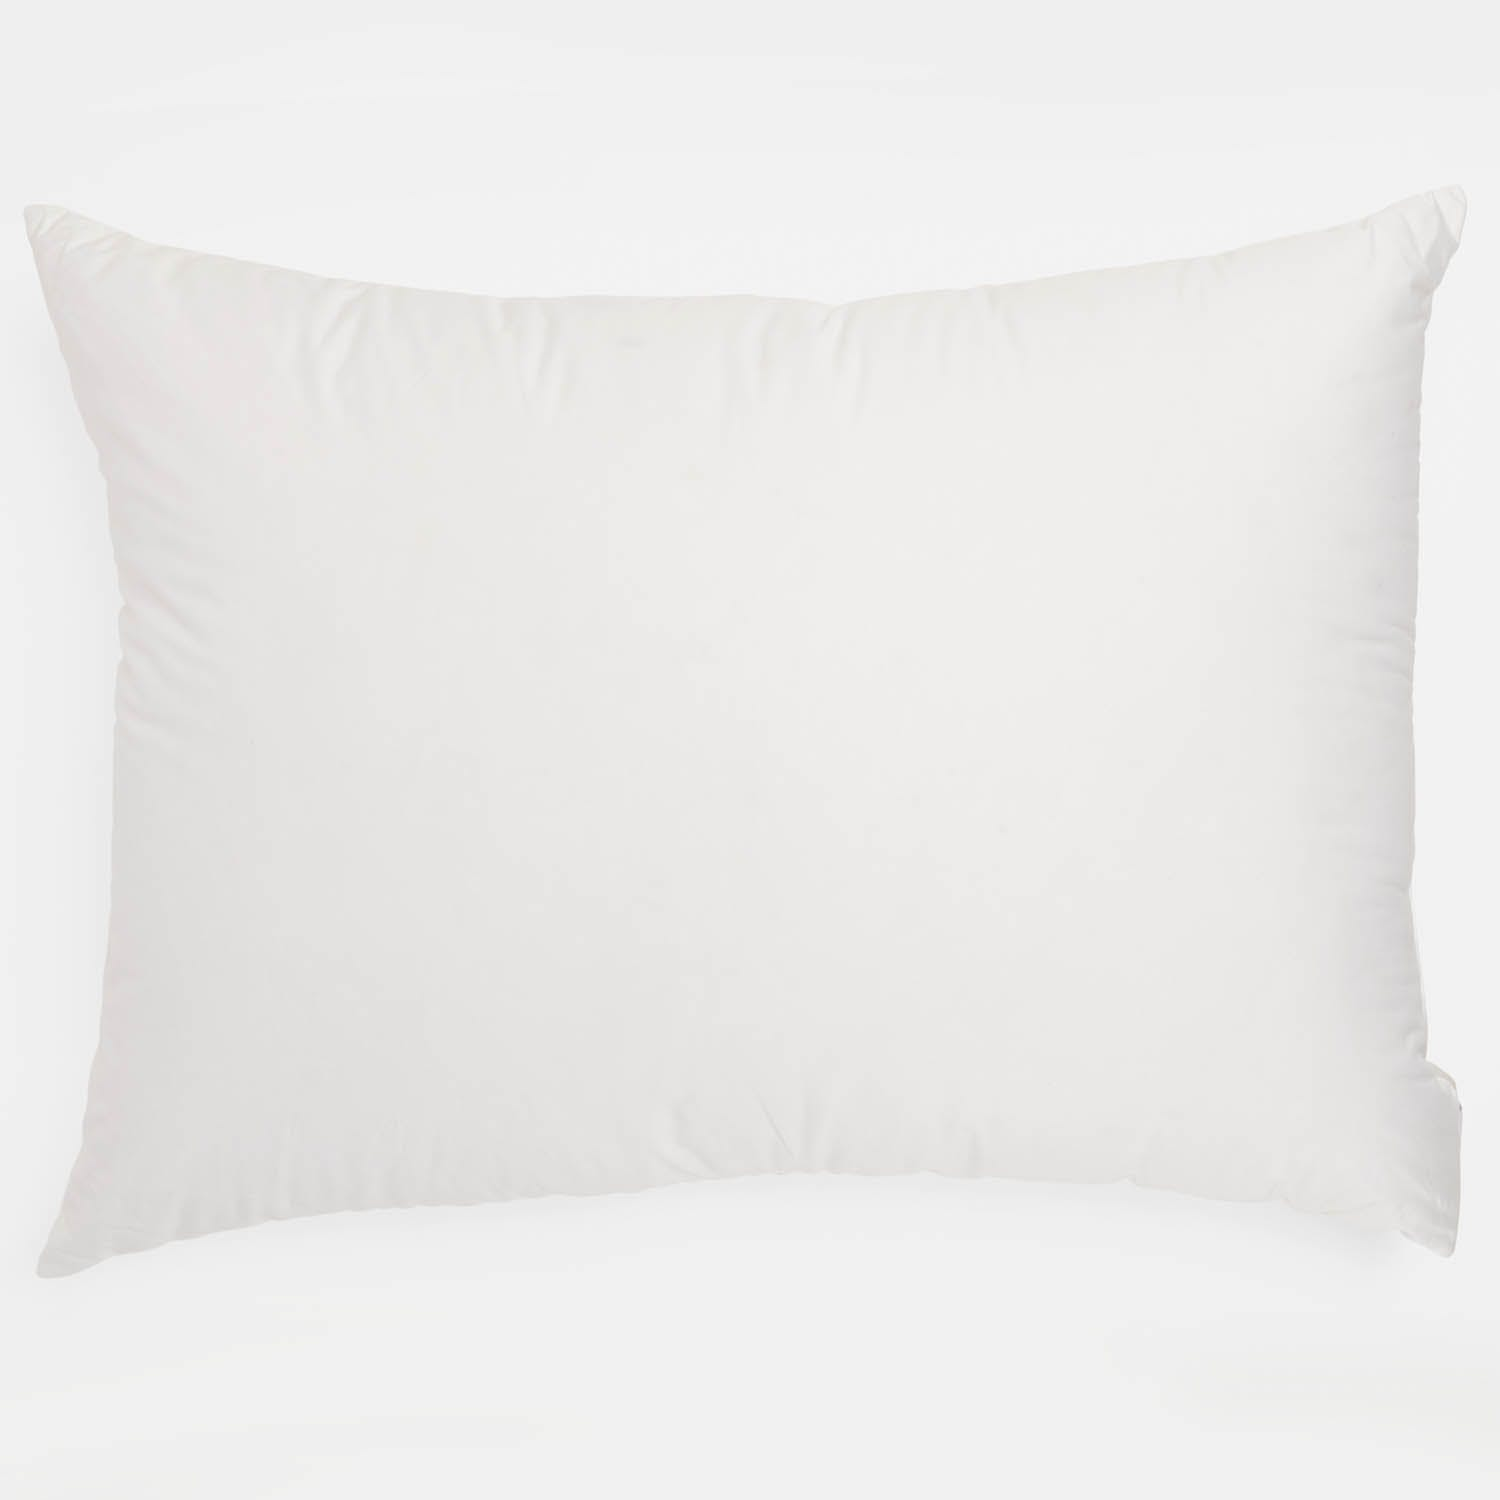 Product Image - Bliss Firm Pillow